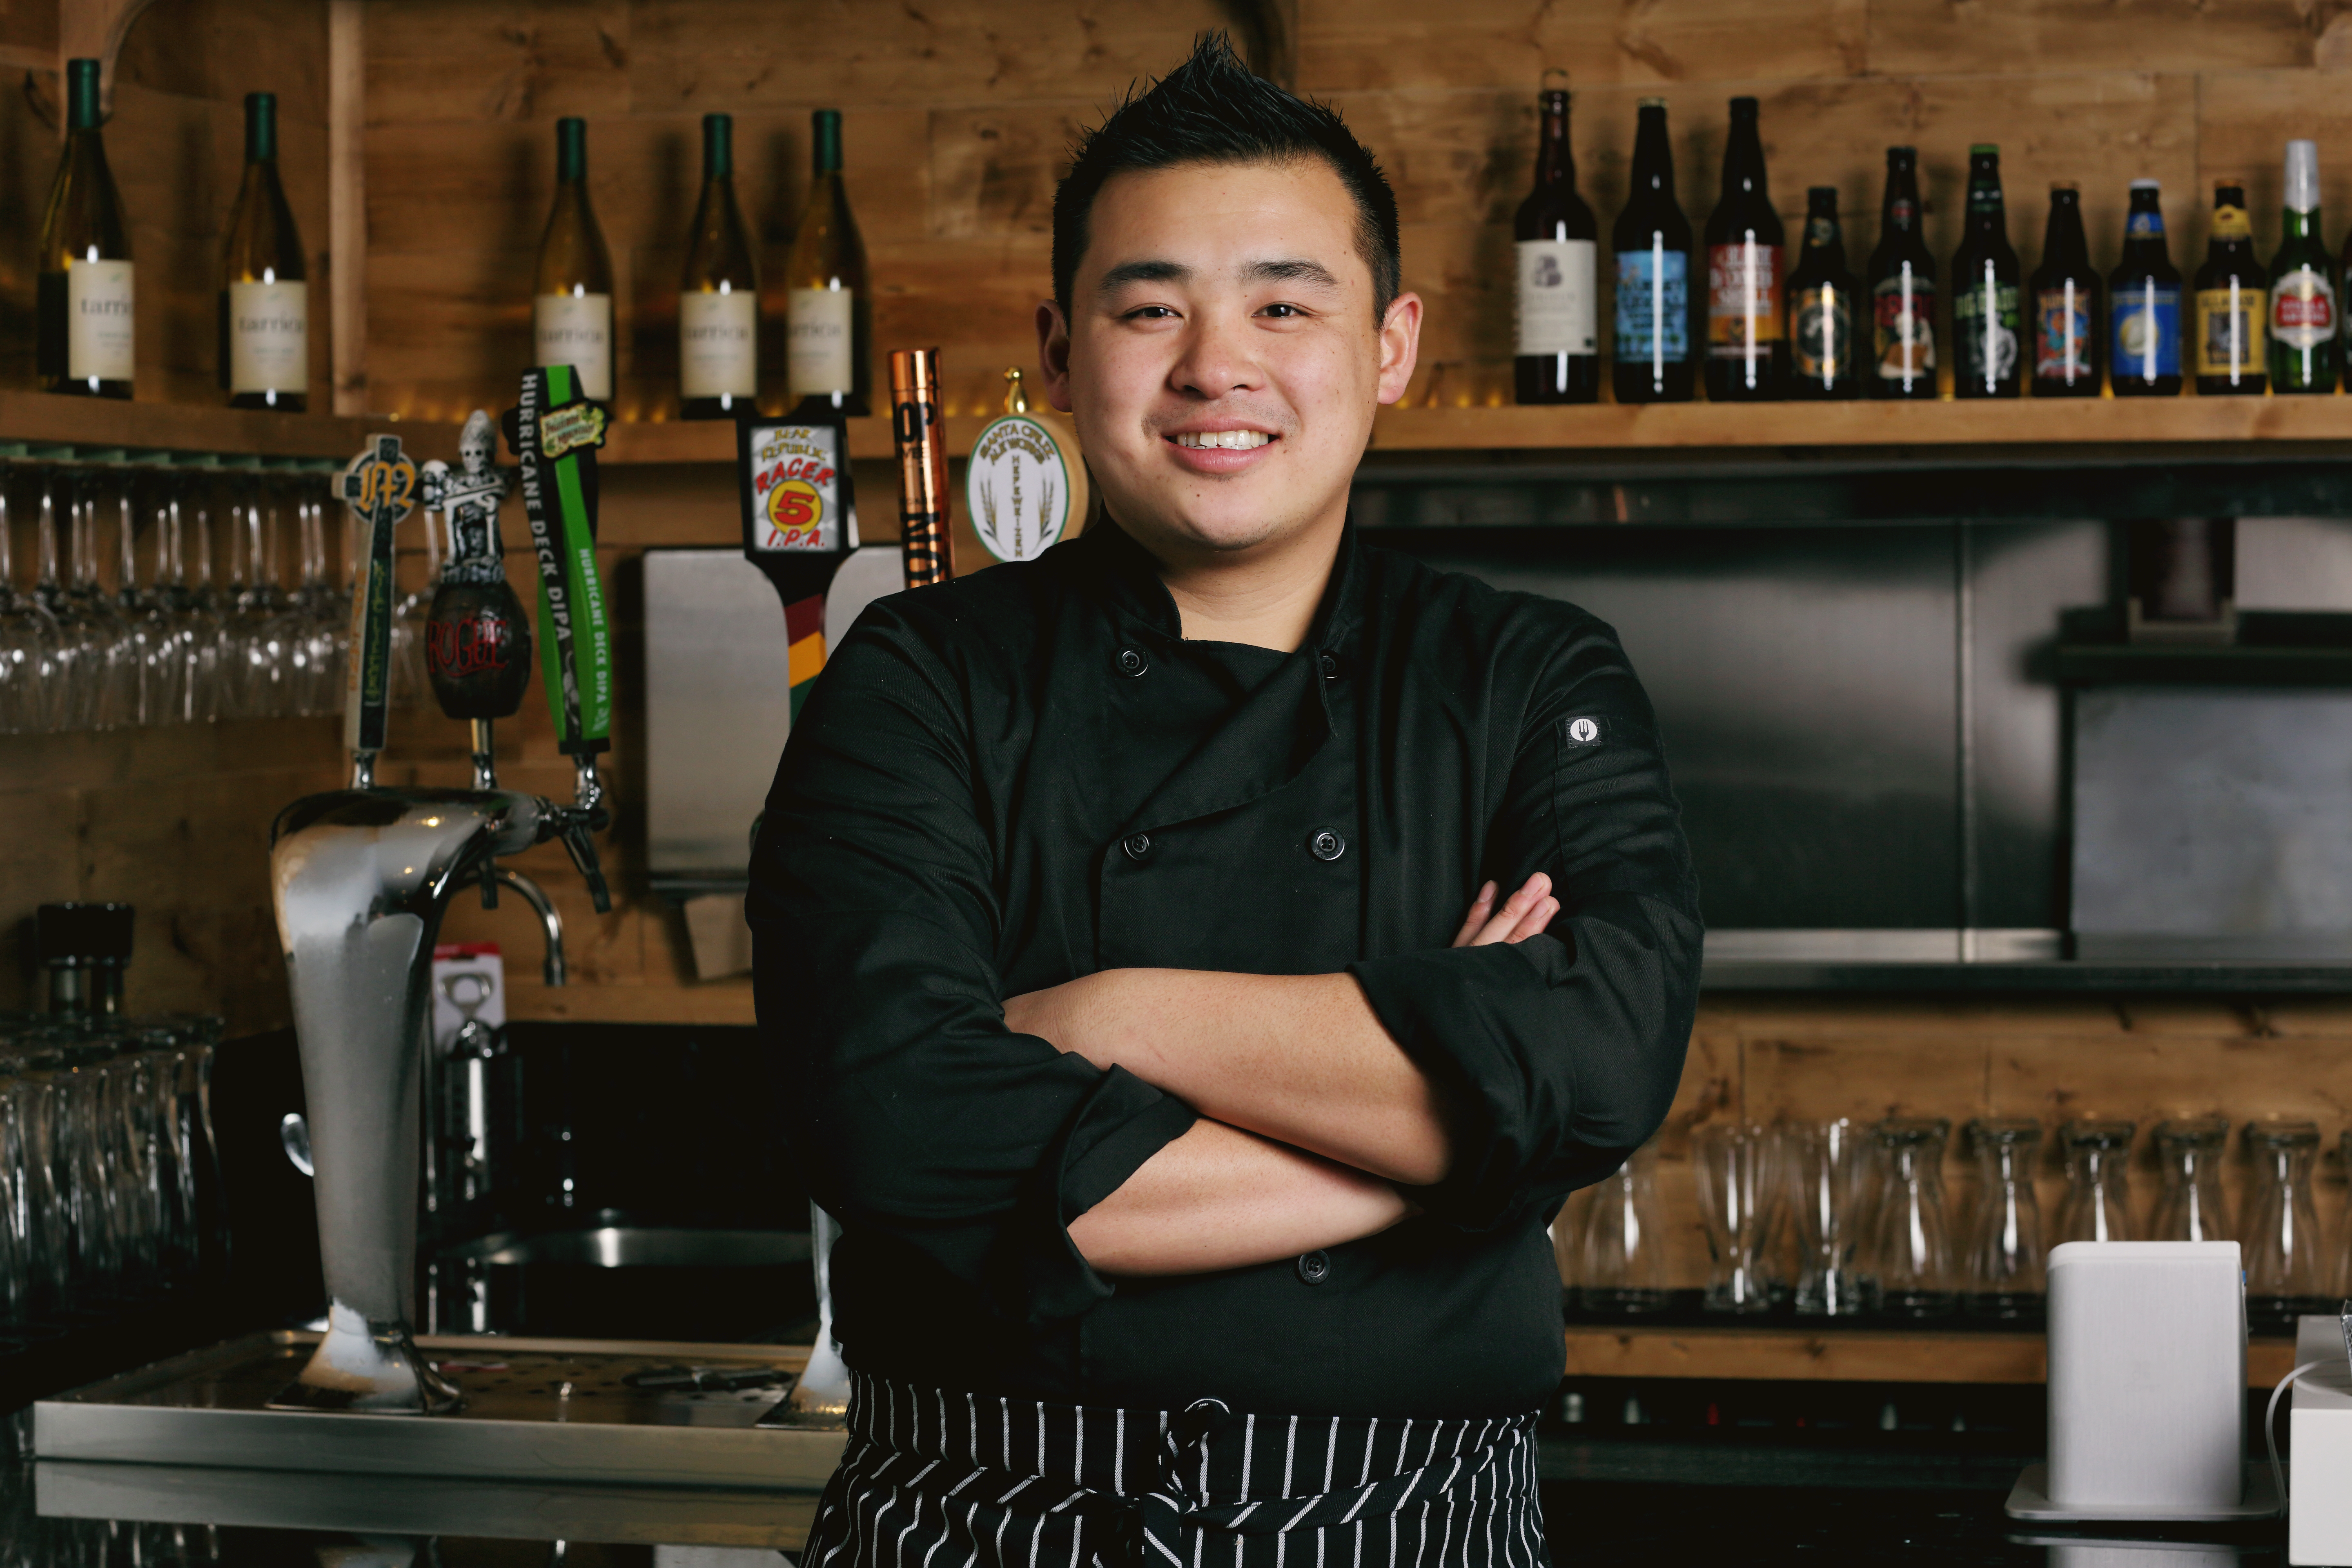 Brandon Poon feeds diners Southeast Asian one-bowl meals, at his fast-casual restaurant and catering operation Srasa Kitchen.